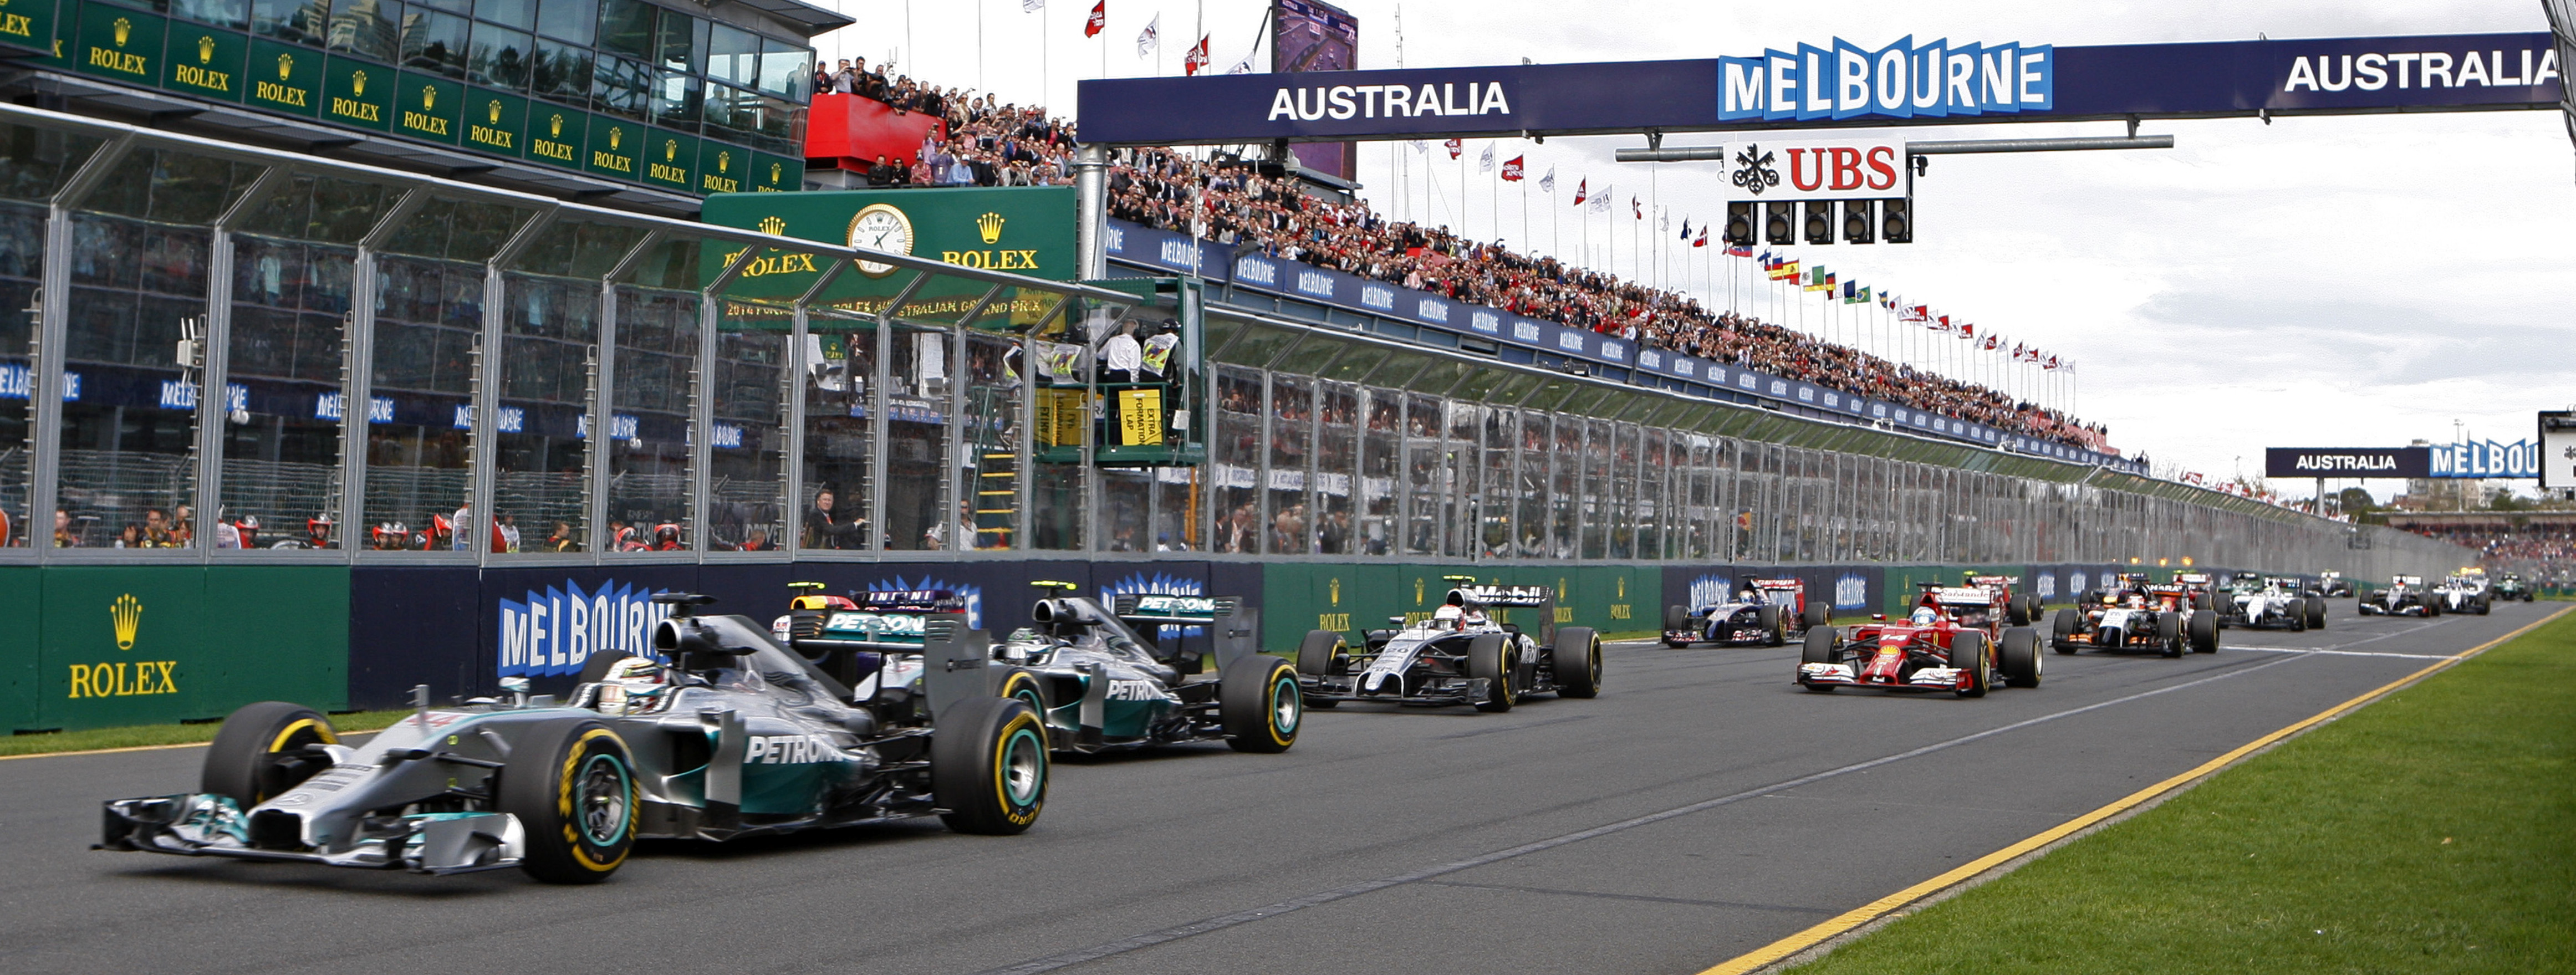 Us Grand Prix >> 2014 Australian GP – Rosberg on top in Down Under Paul Tan - Image 235437